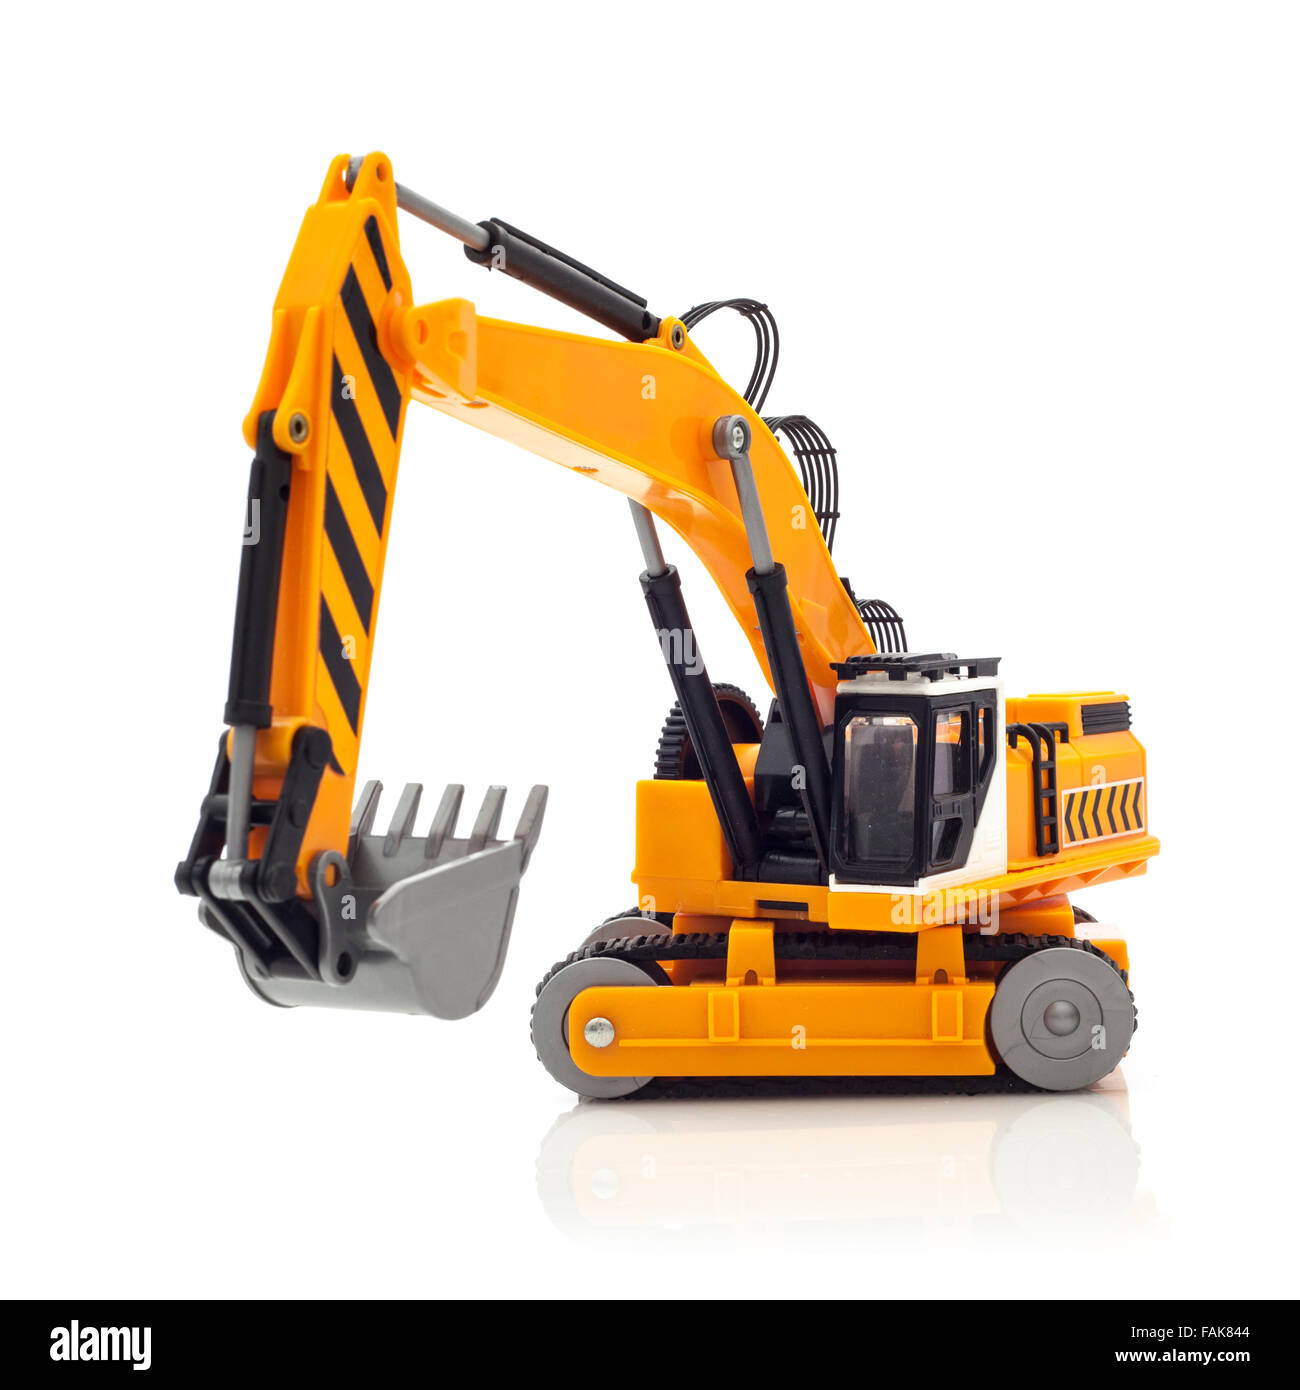 Digger Toy Yellow Digger Toy On A White Background Stock Photo 92621876 Alamy